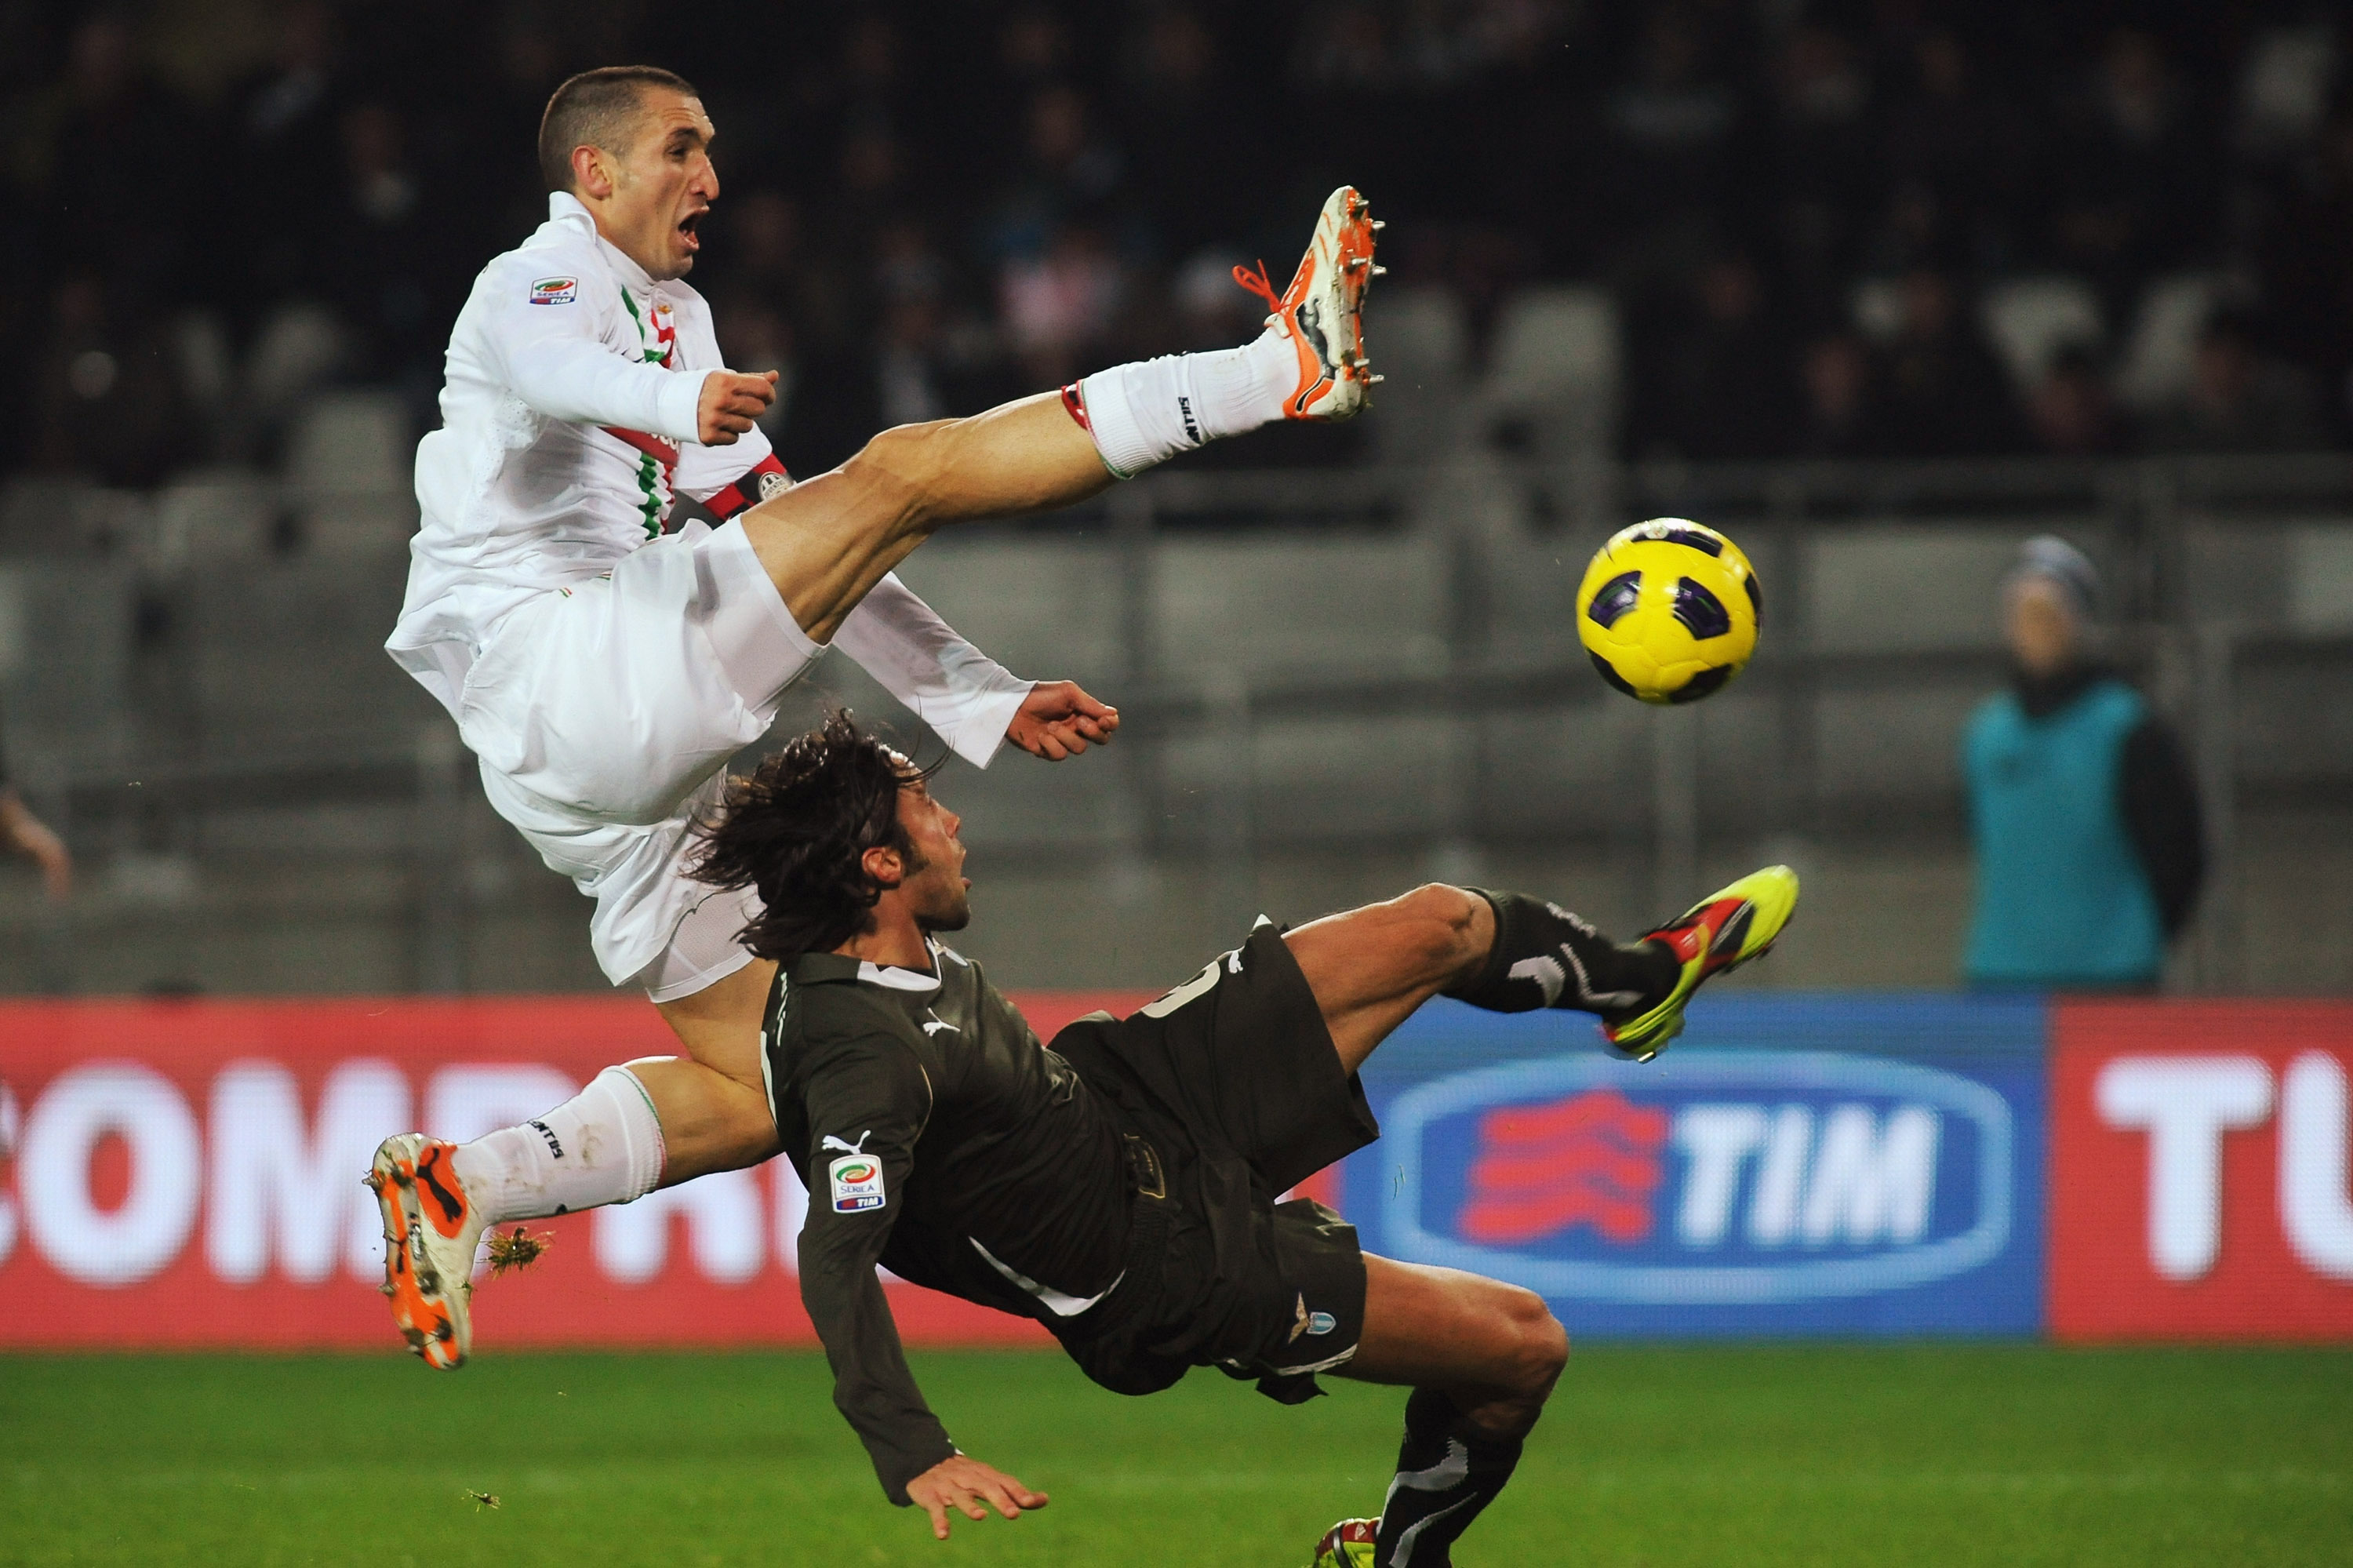 TURIN, ITALY - DECEMBER 12:  Giorgio Chiellini of Juventus FC clashes with Stefano Mauri of SS Lazio during the Serie A match between Juventus FC and SS Lazio at Olimpico Stadium on December 12, 2010 in Turin, Italy.  (Photo by Valerio Pennicino/Getty Ima